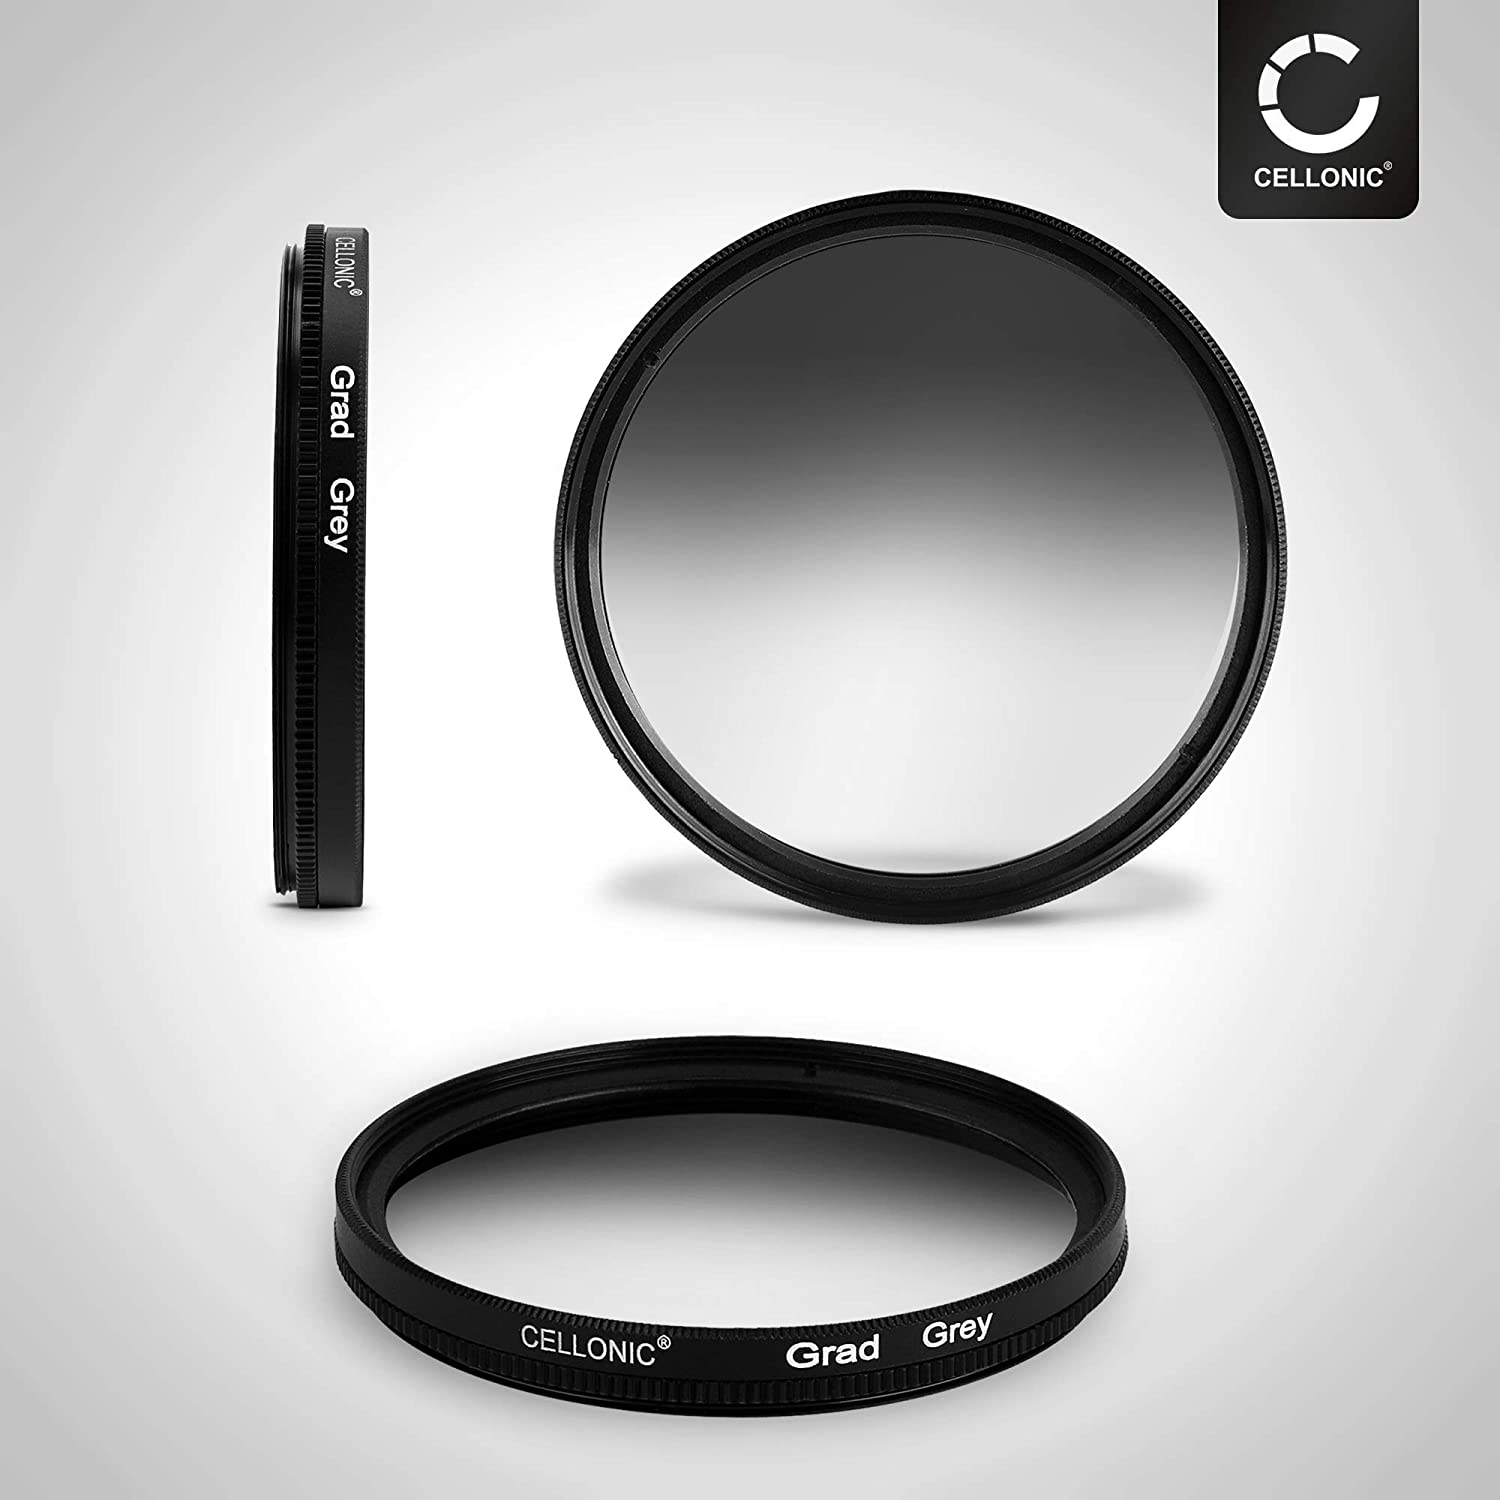 CELLONIC Graduated filter Gradient compatible with Zeiss Distagon 82mm Gradient Filter